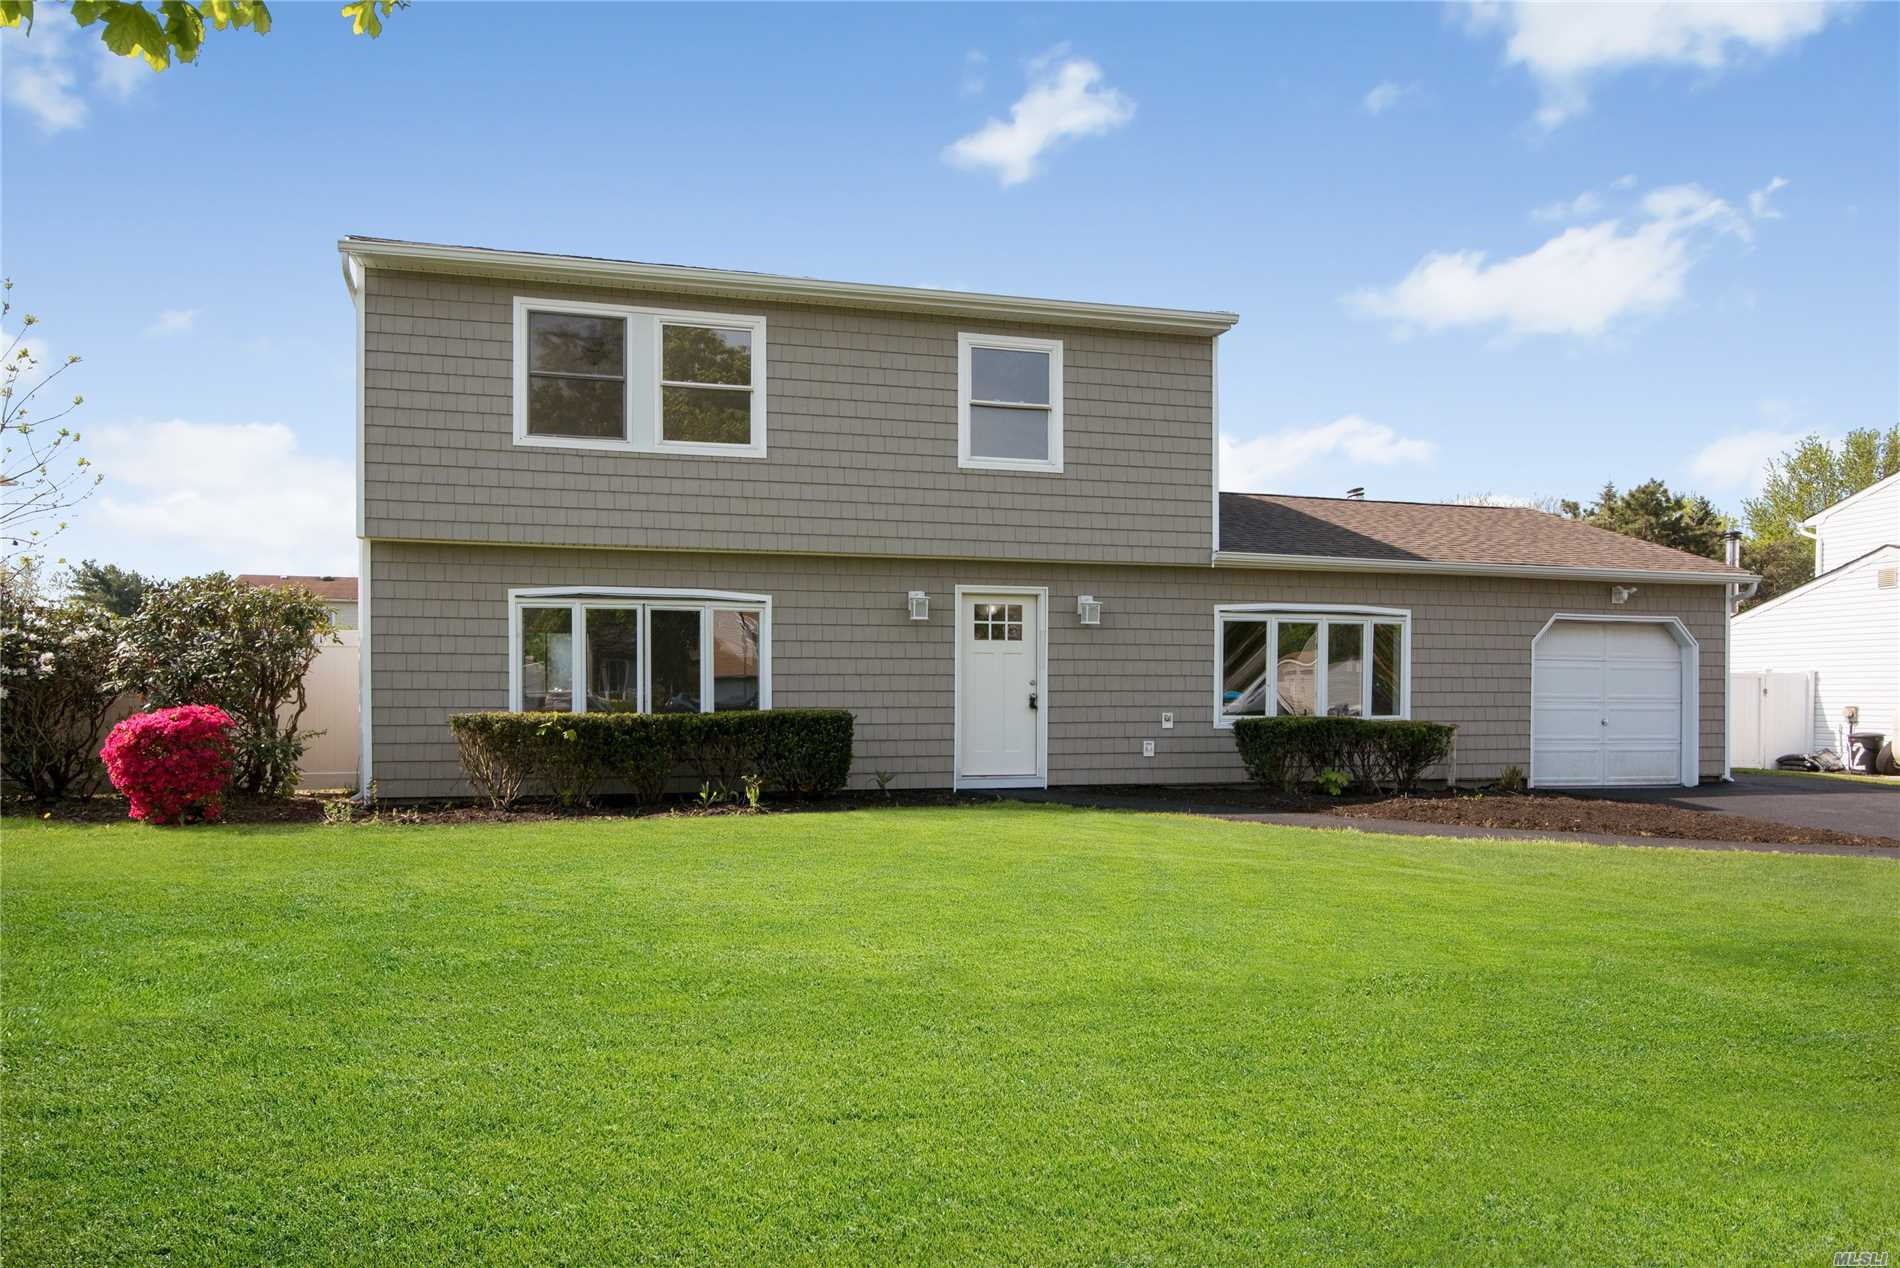 Beautiful two story colonial home. NEWLY RENOVATED. Open floor plan. Enjoy a spacious backyard with enough room to install an in-ground pool if desired. This home features an open kitchen with lots of cabinet space facing living room. Enjoy cooking while entertaining guest. Newly installed roof. New boiler. New Hardwood floors throughout the downstairs living areas. One car garage and a private driveway to complete the home experience.